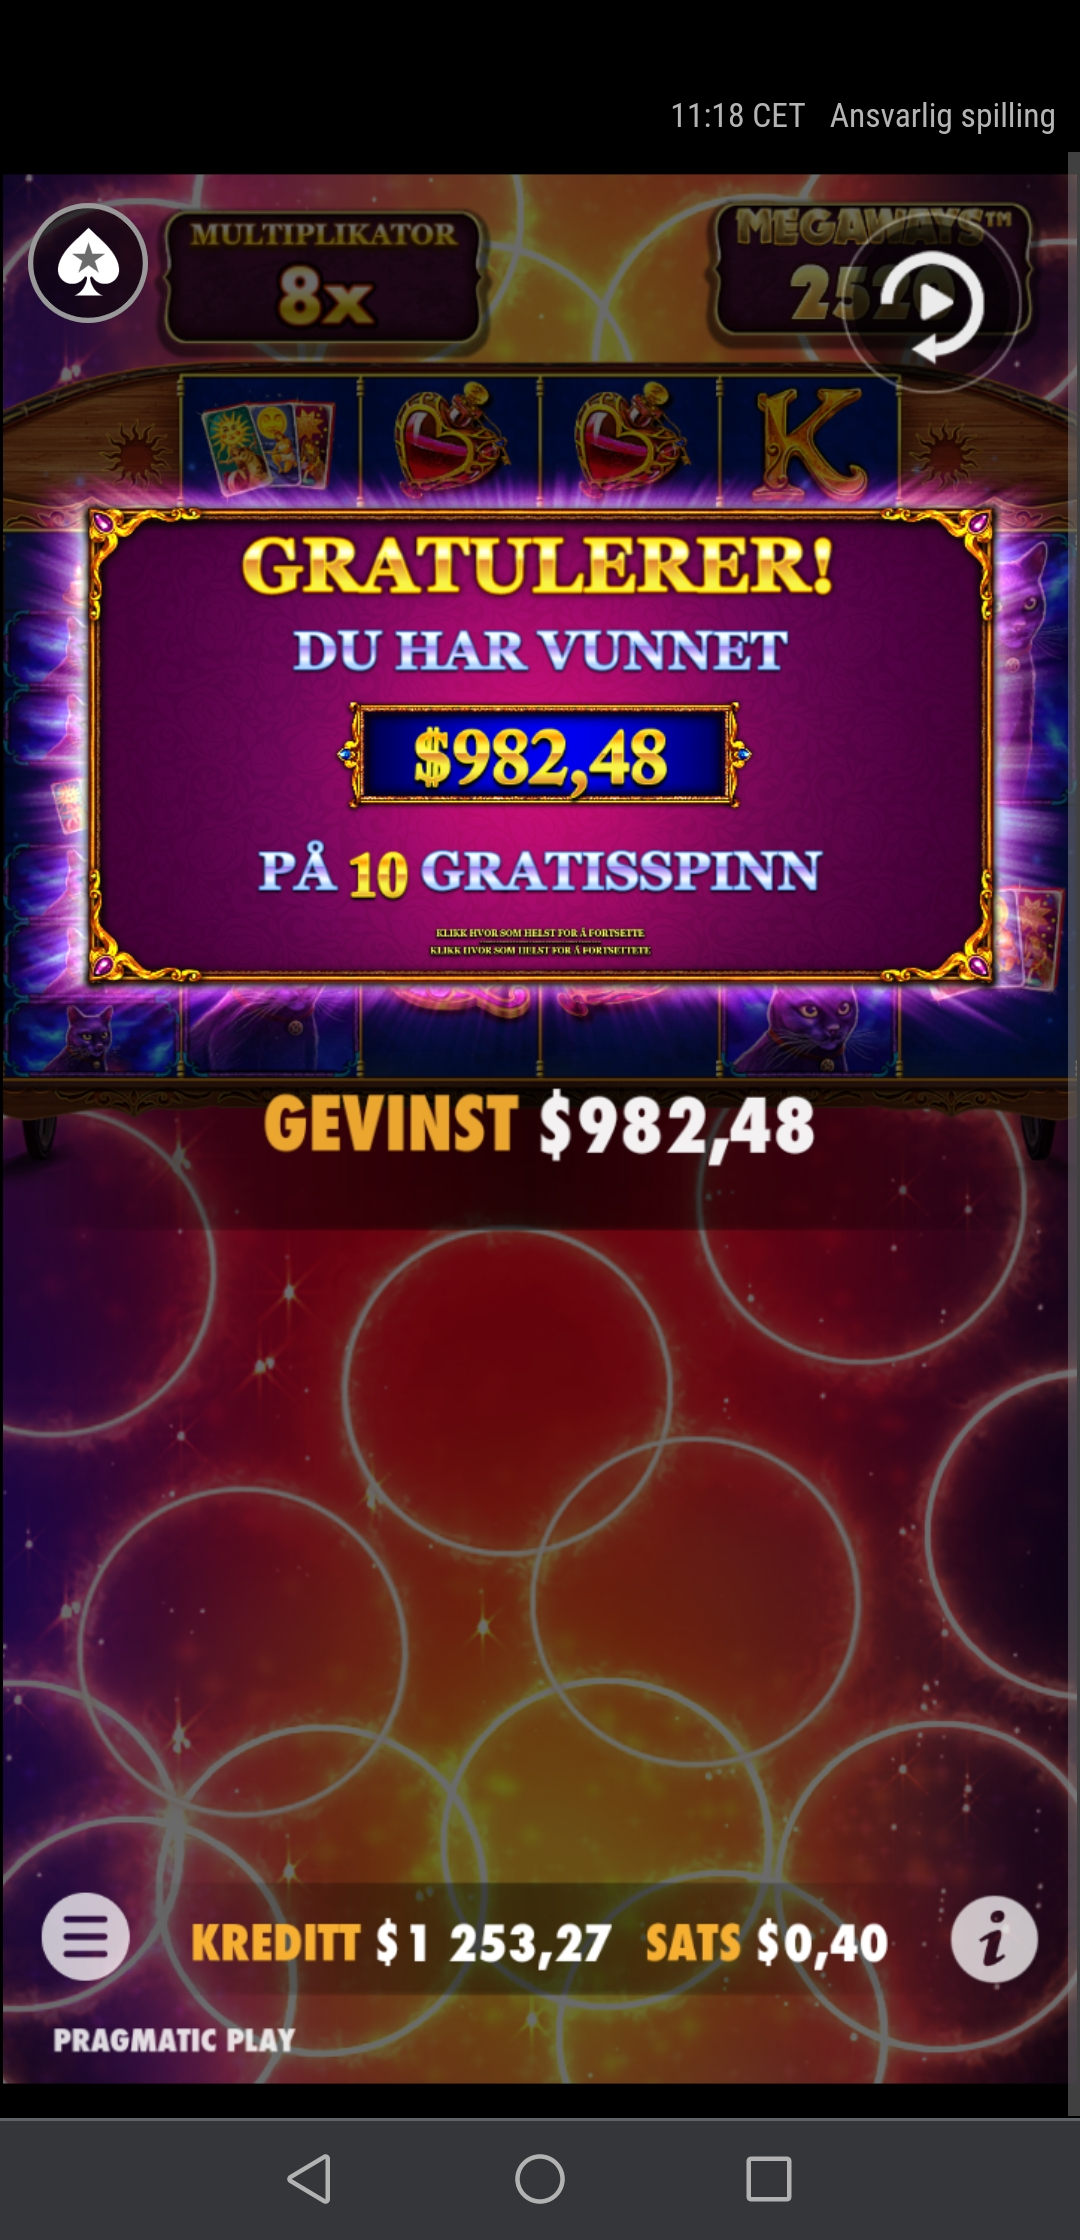 I won 982 USD on a 0.40 usd stake on a Pragmatic Play slot during free spins. Omfg.